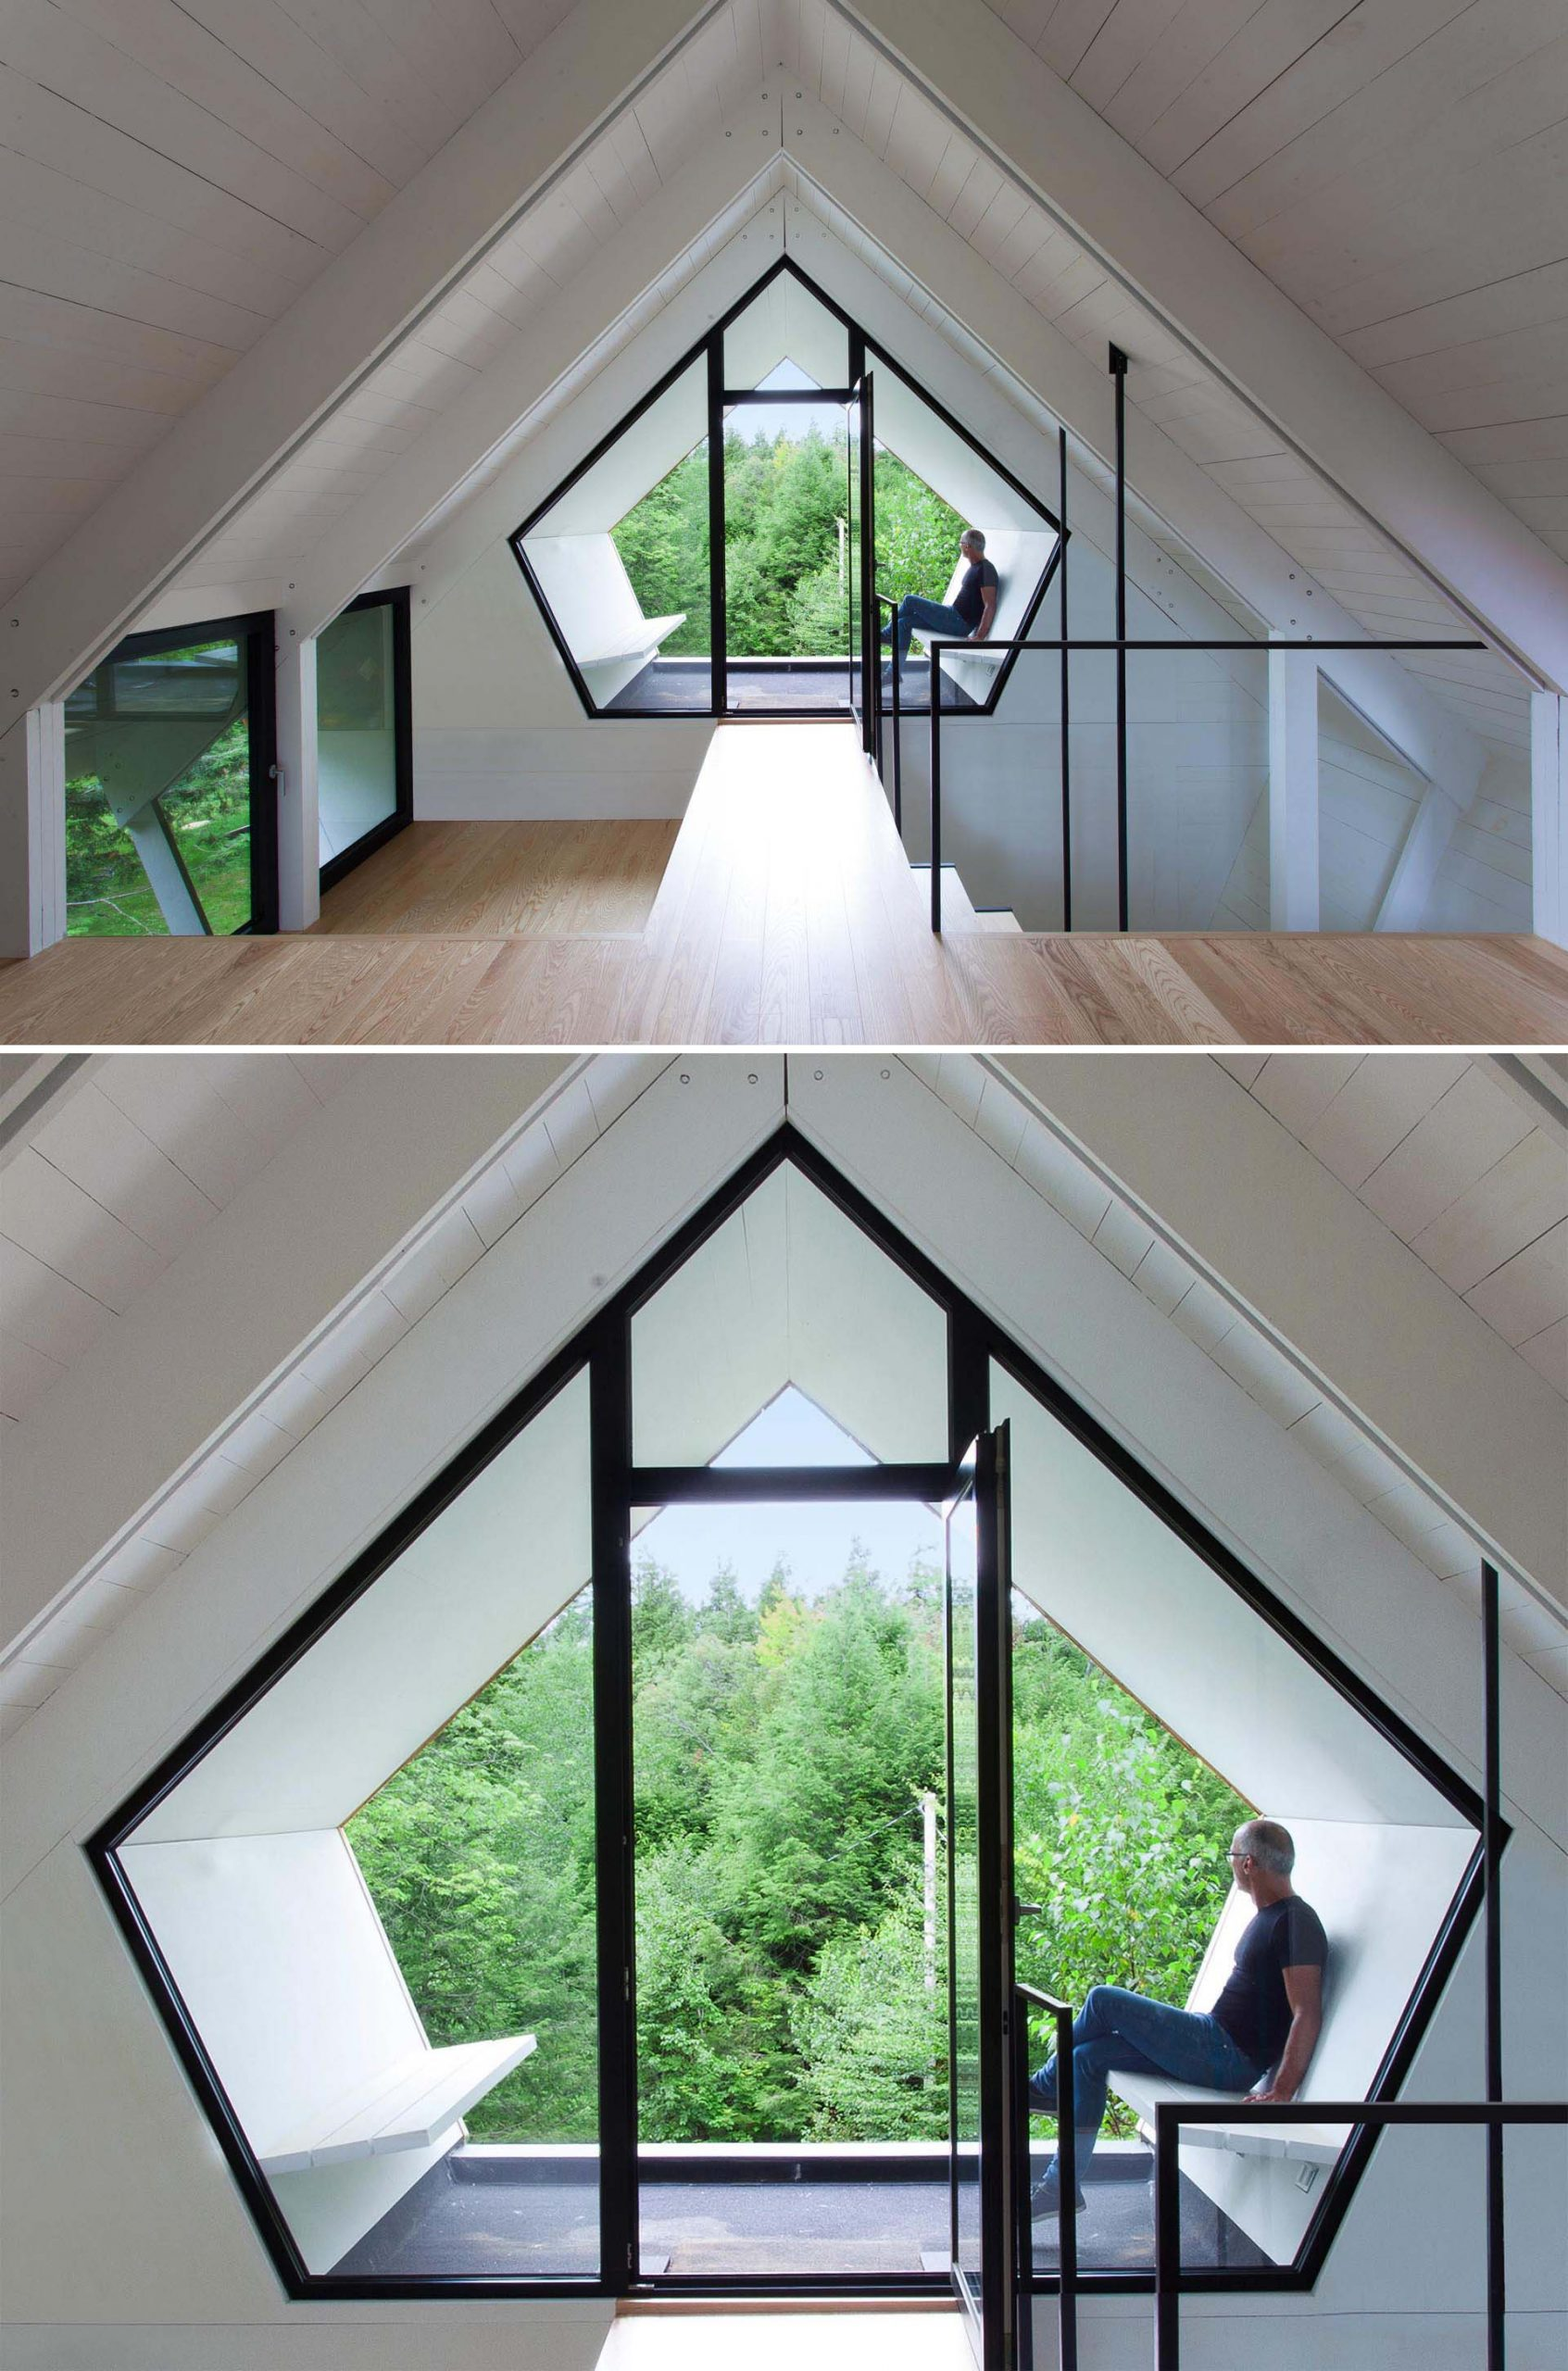 From inside the cottage, there's a wood walkway that leads to a pentagonal shaped window with a door in it. The door opens to provide access to the seating that's positioned to take advantage of the different views.